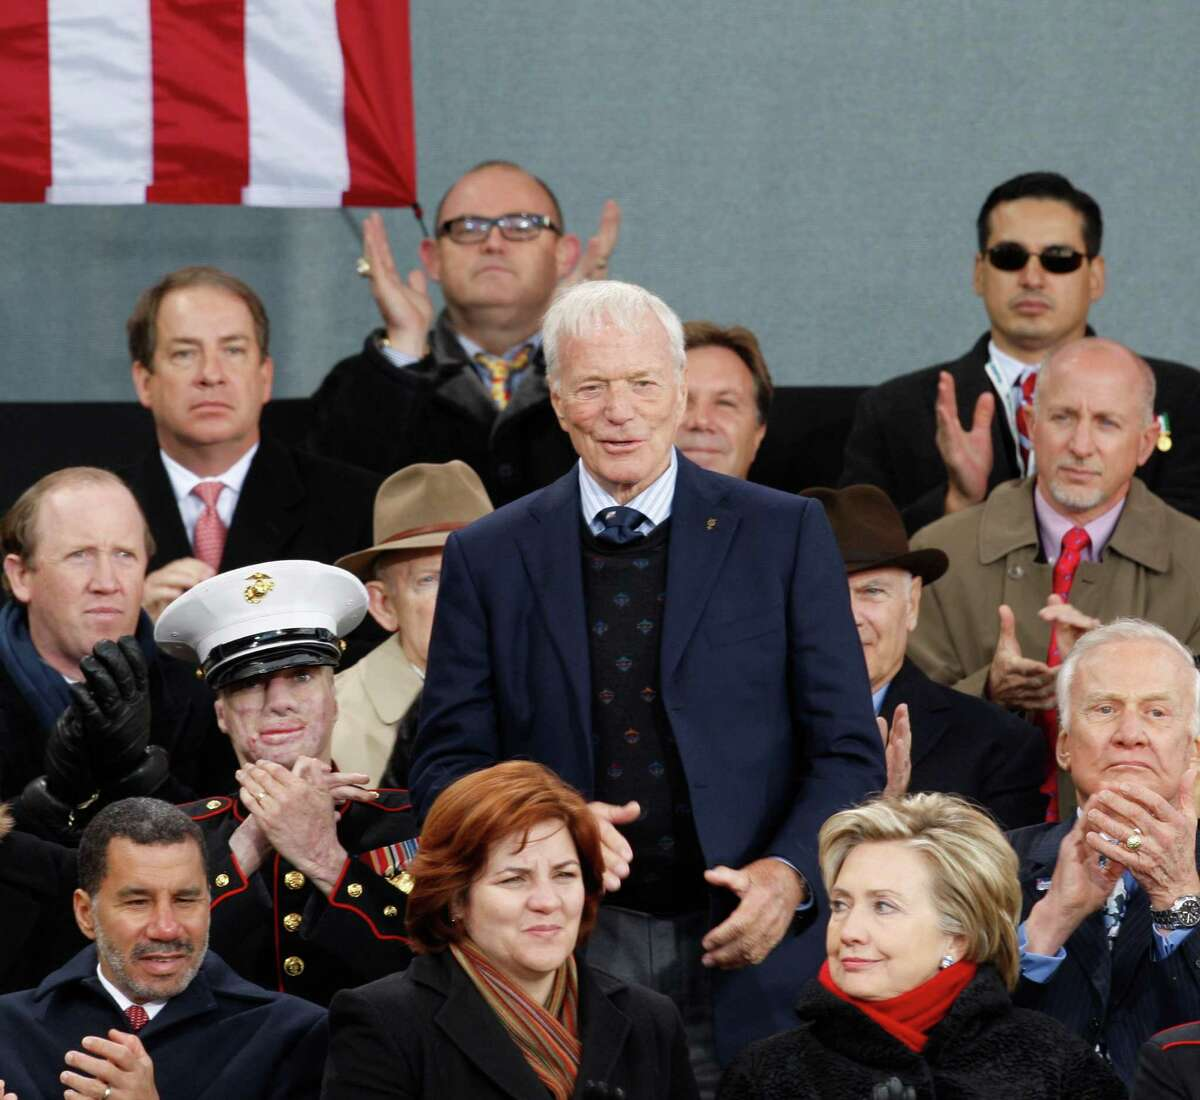 Dignitaries applaud as Astronaut Scott Carpenter, center, is introduced at the rededication ceremony for the Intrepid Sea, Air and Space Museum in New York, Tuesday, Nov. 11, 2008. New York Governor David Patterson, lower left, City Council Speaker Christine Quinn, lower row, center, and U.S. Senator Hillary Clinton, D-N.Y., are seated on the stage for the visit of President George Bush. (AP Photo/Kathy Willens)